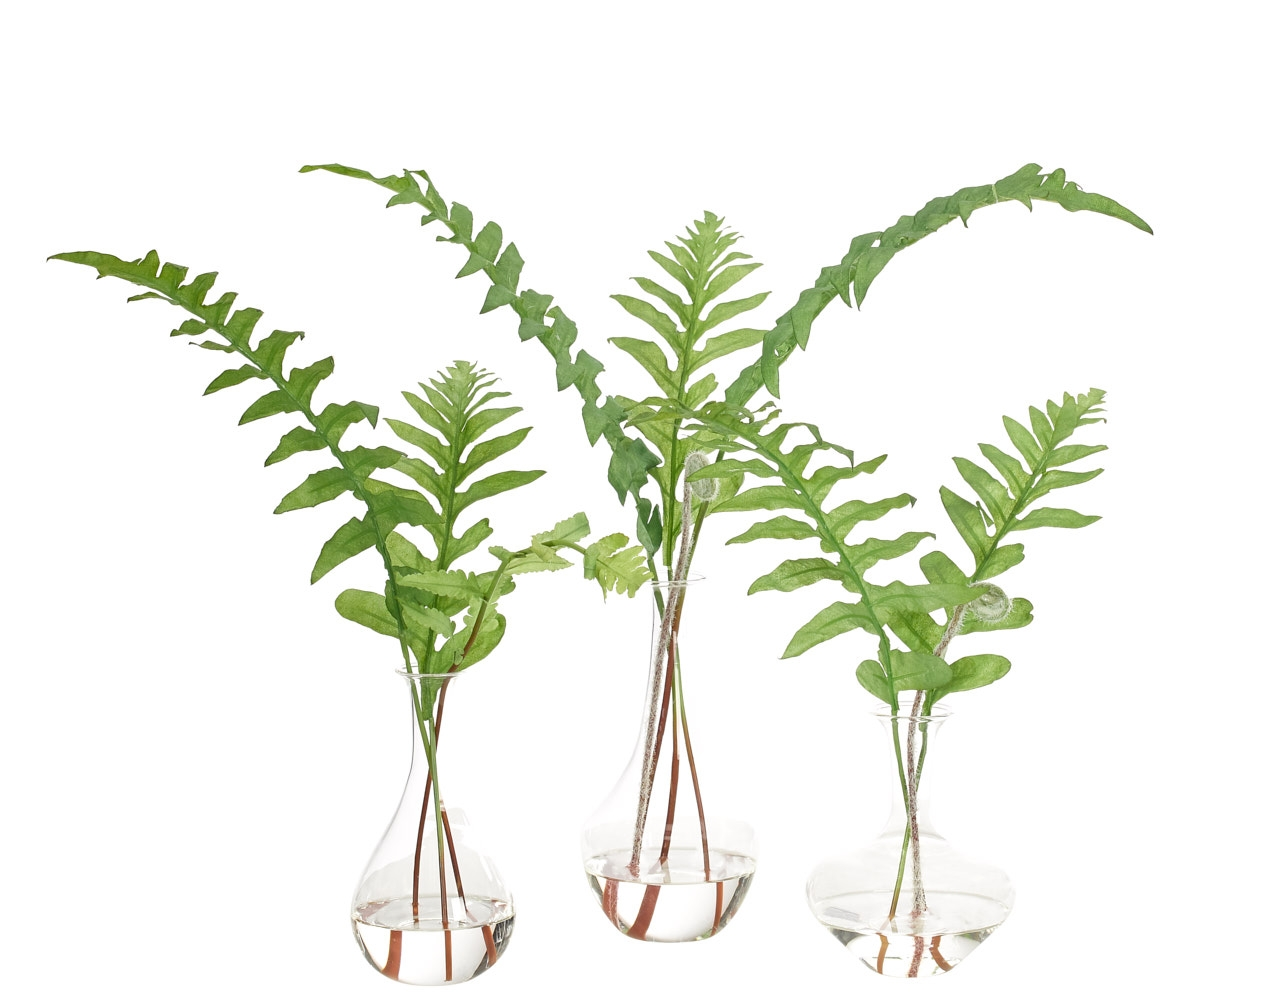 Ginger Fern, Glass Bud Vase, Set of 3,12-18wx5-11dx12-17h